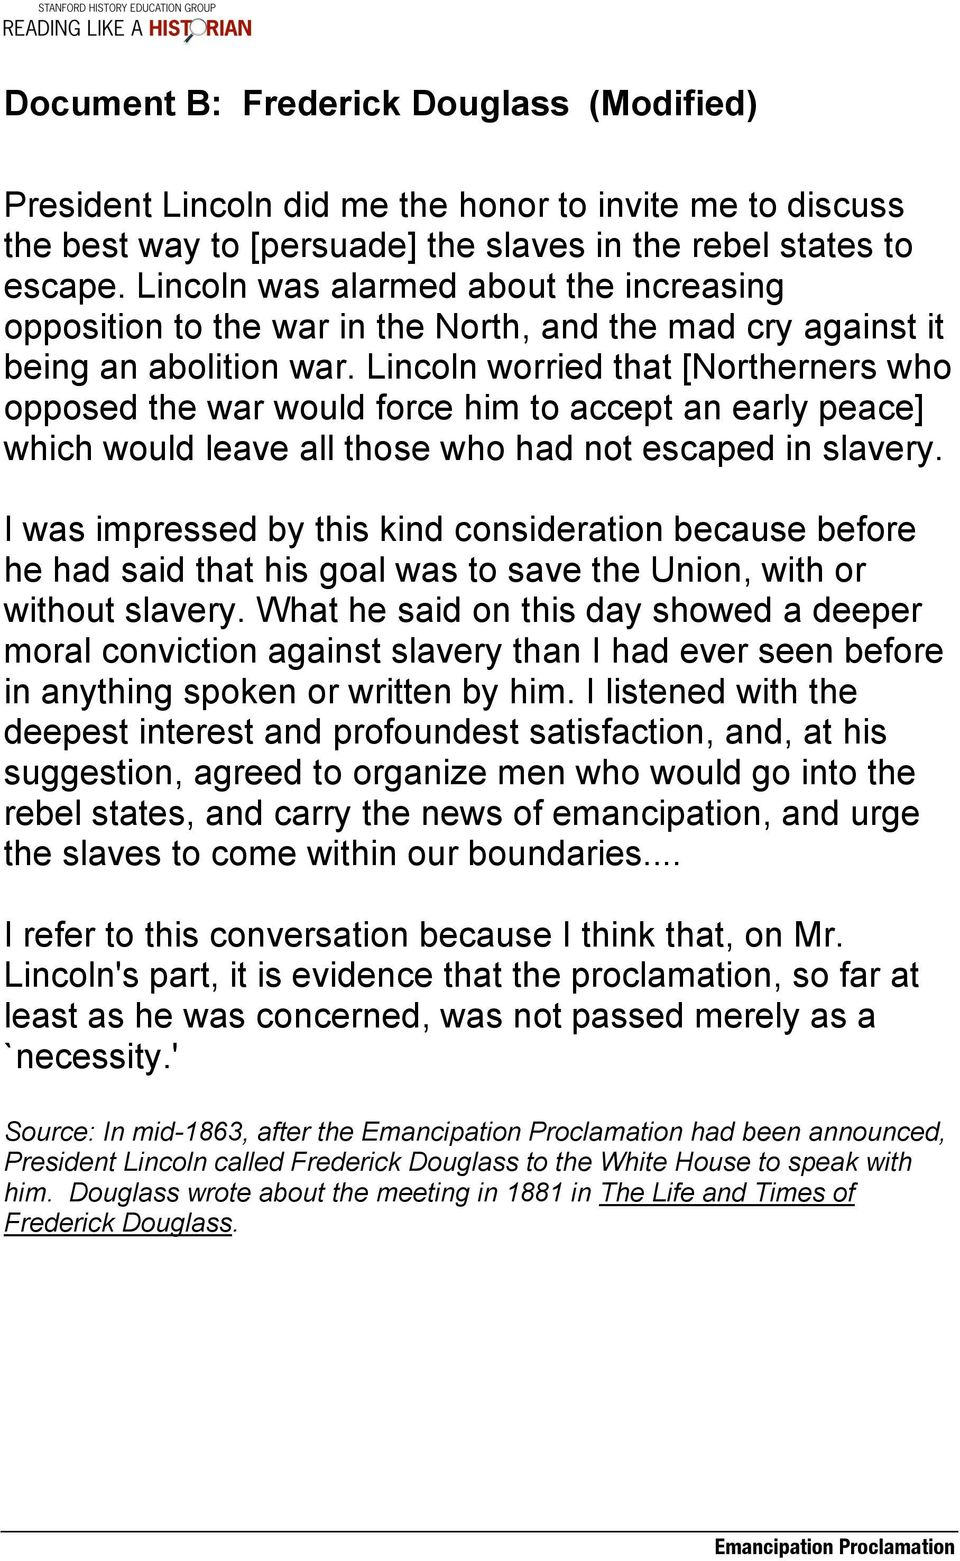 Emancipation Proclamation Lesson Plan Central Historical Question Did Lincoln Free The Slaves Or Did The Slaves Free Themselves Pdf Free Download